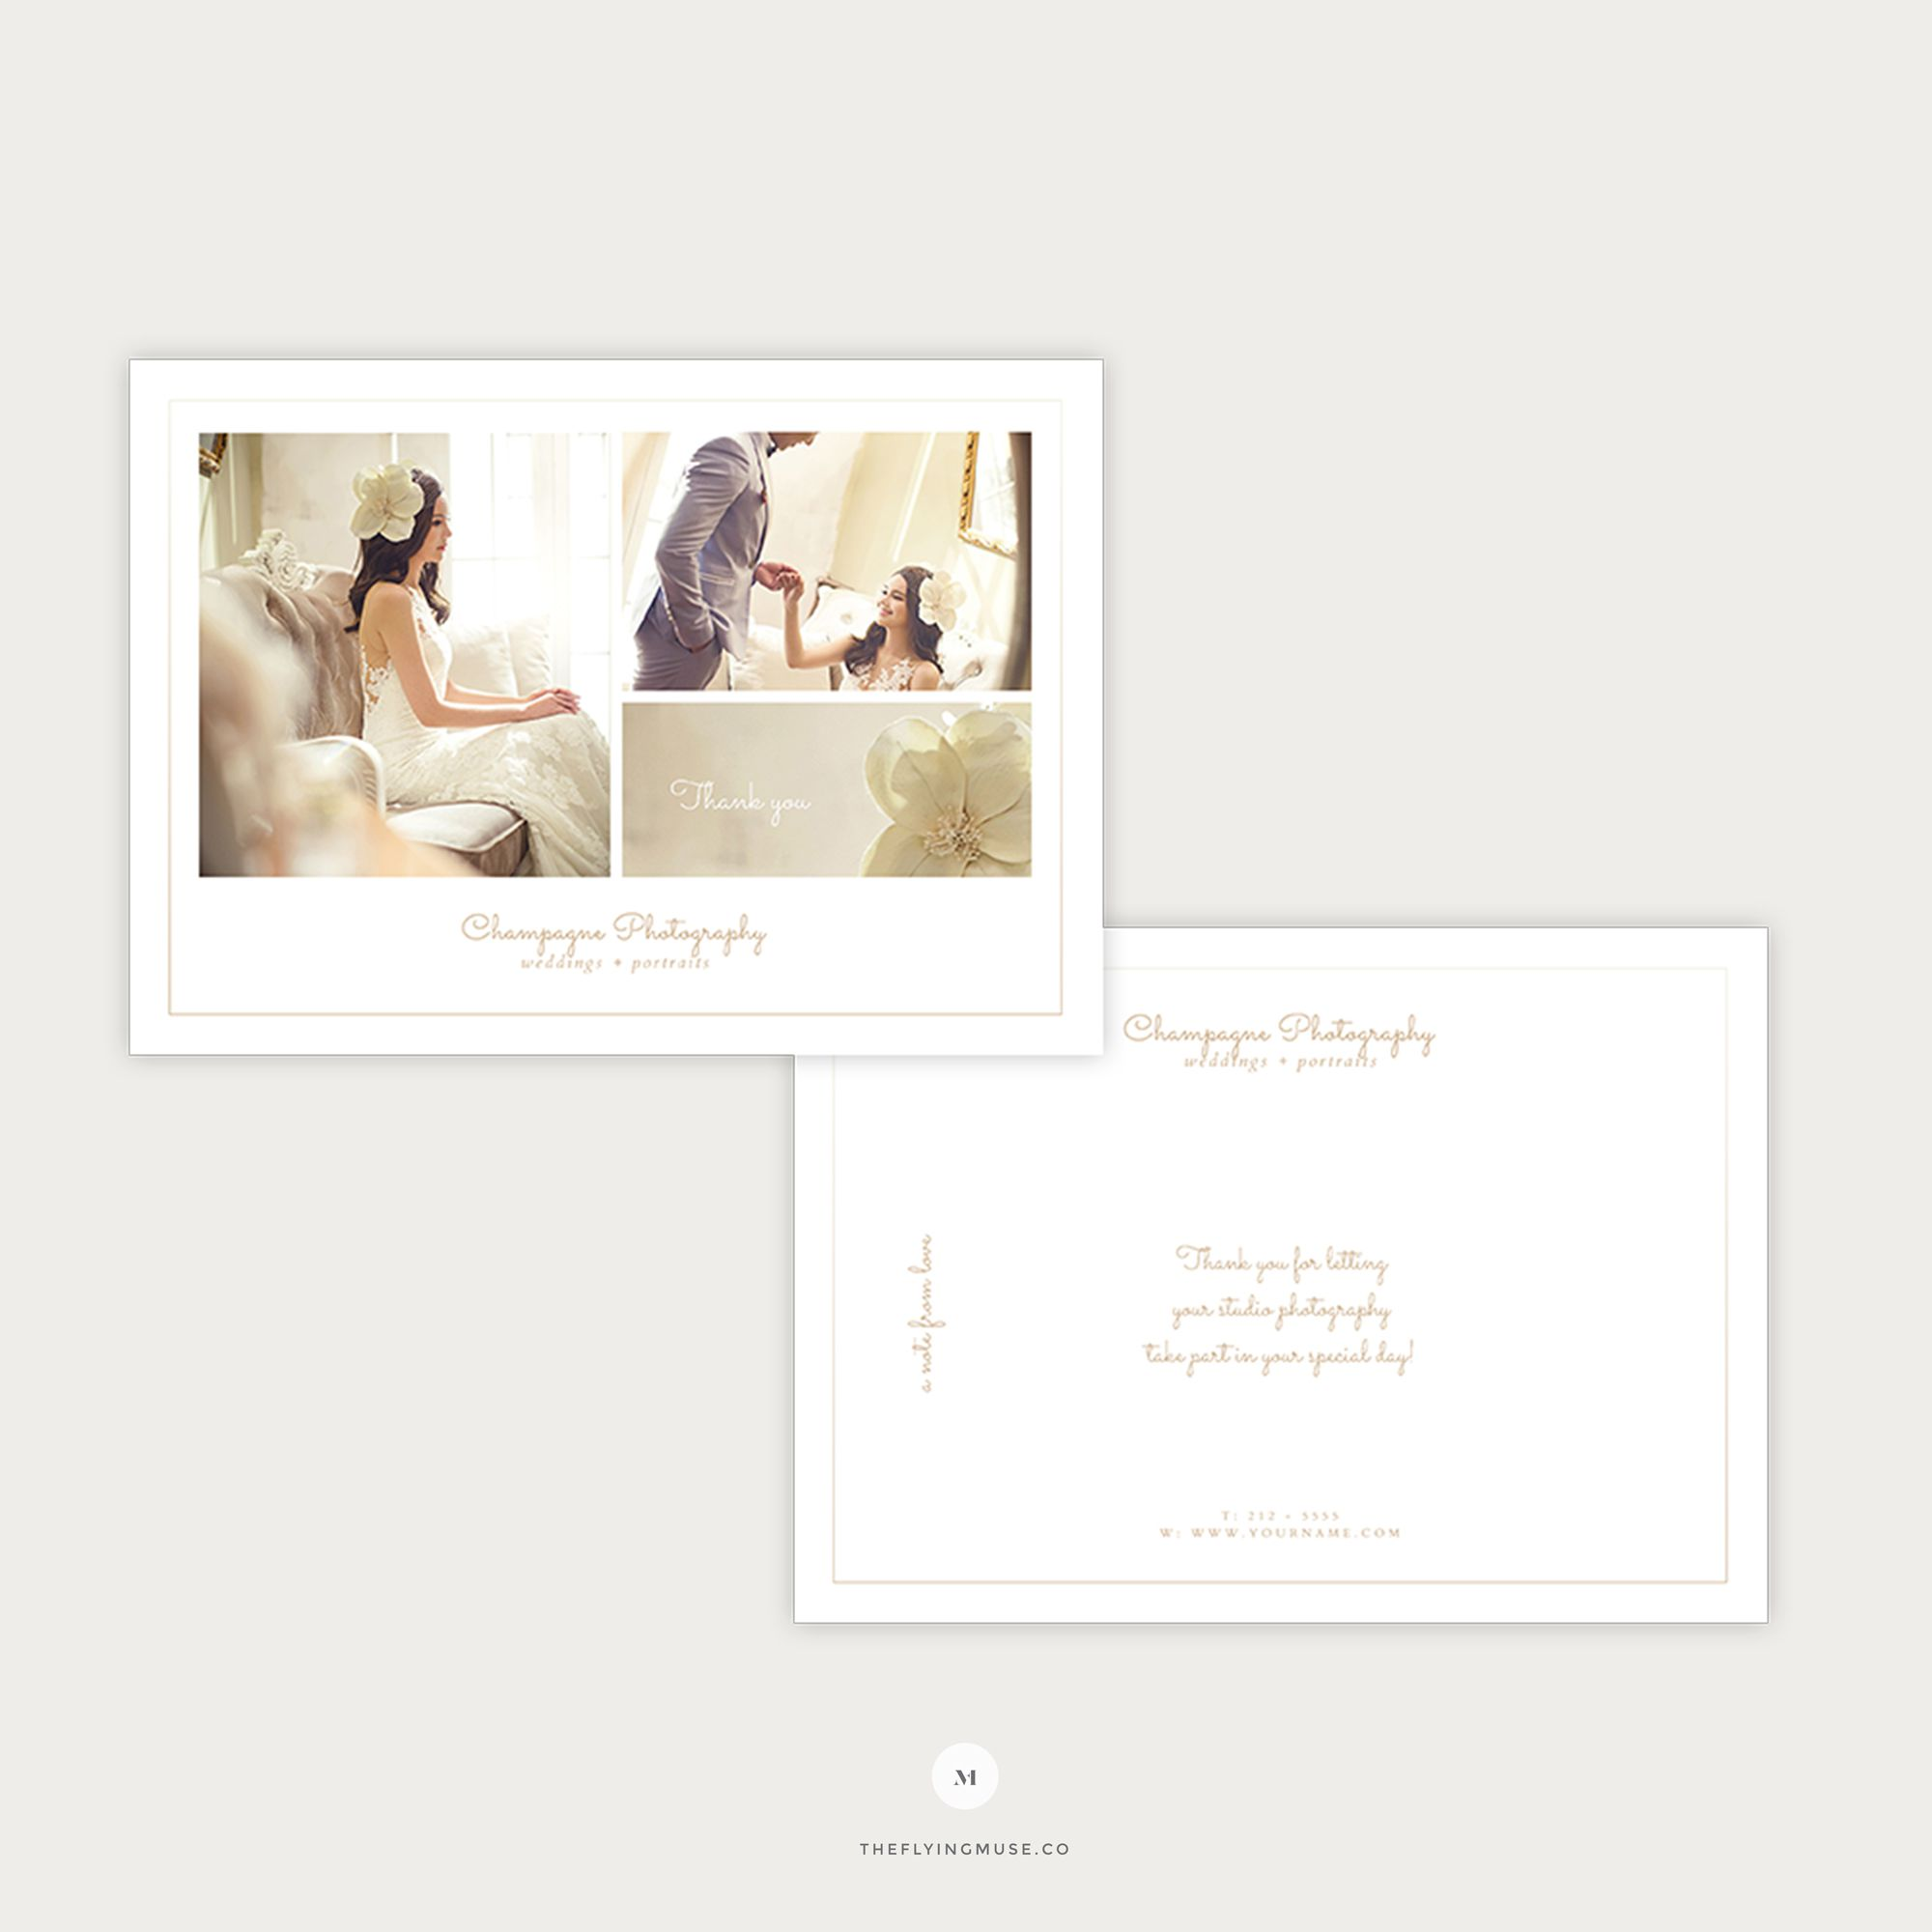 006 Excellent Wedding Thank You Card Templates. Image  Template Etsy Word PublisherFull